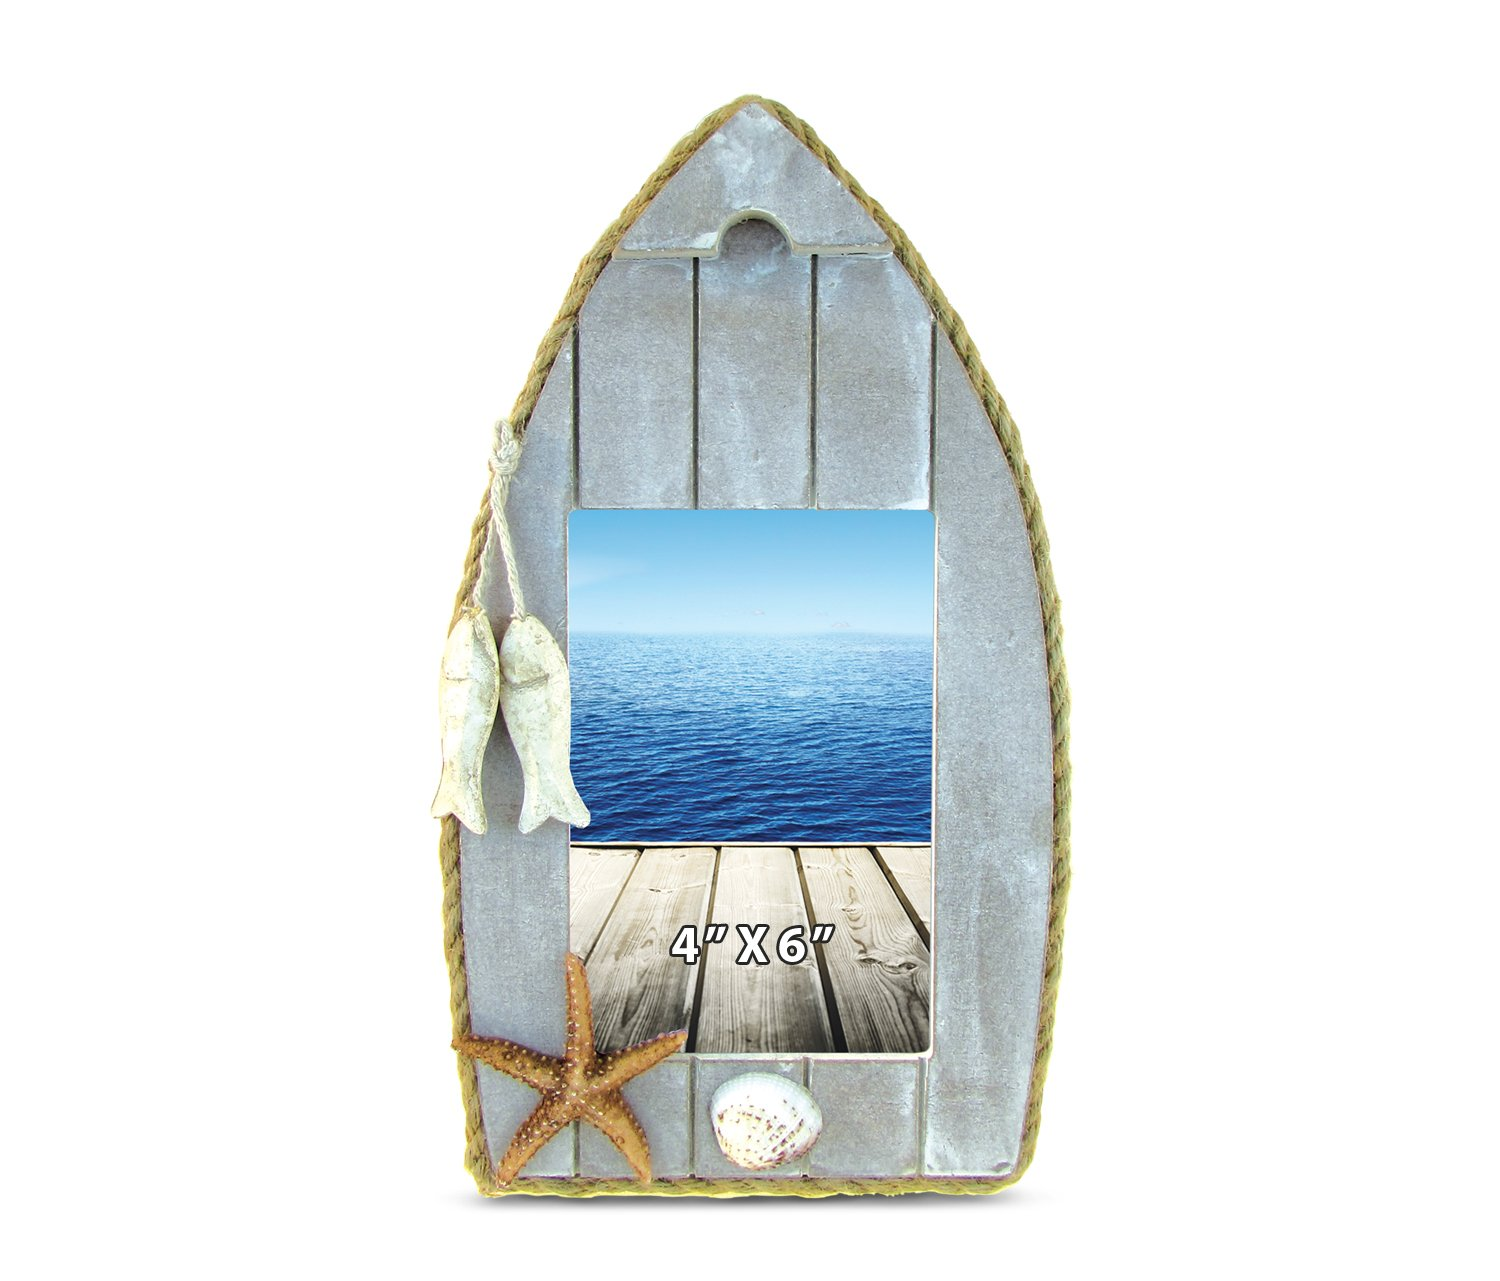 Nautical Beach Theme Home Decor Puzzled Coastal 4 x 6 Distressed Wooden Sail Boat Picture Frame Lake House Cruise Decoration Back Easel Handcrafted for Tabletops Office Desktop Tabletop Accent